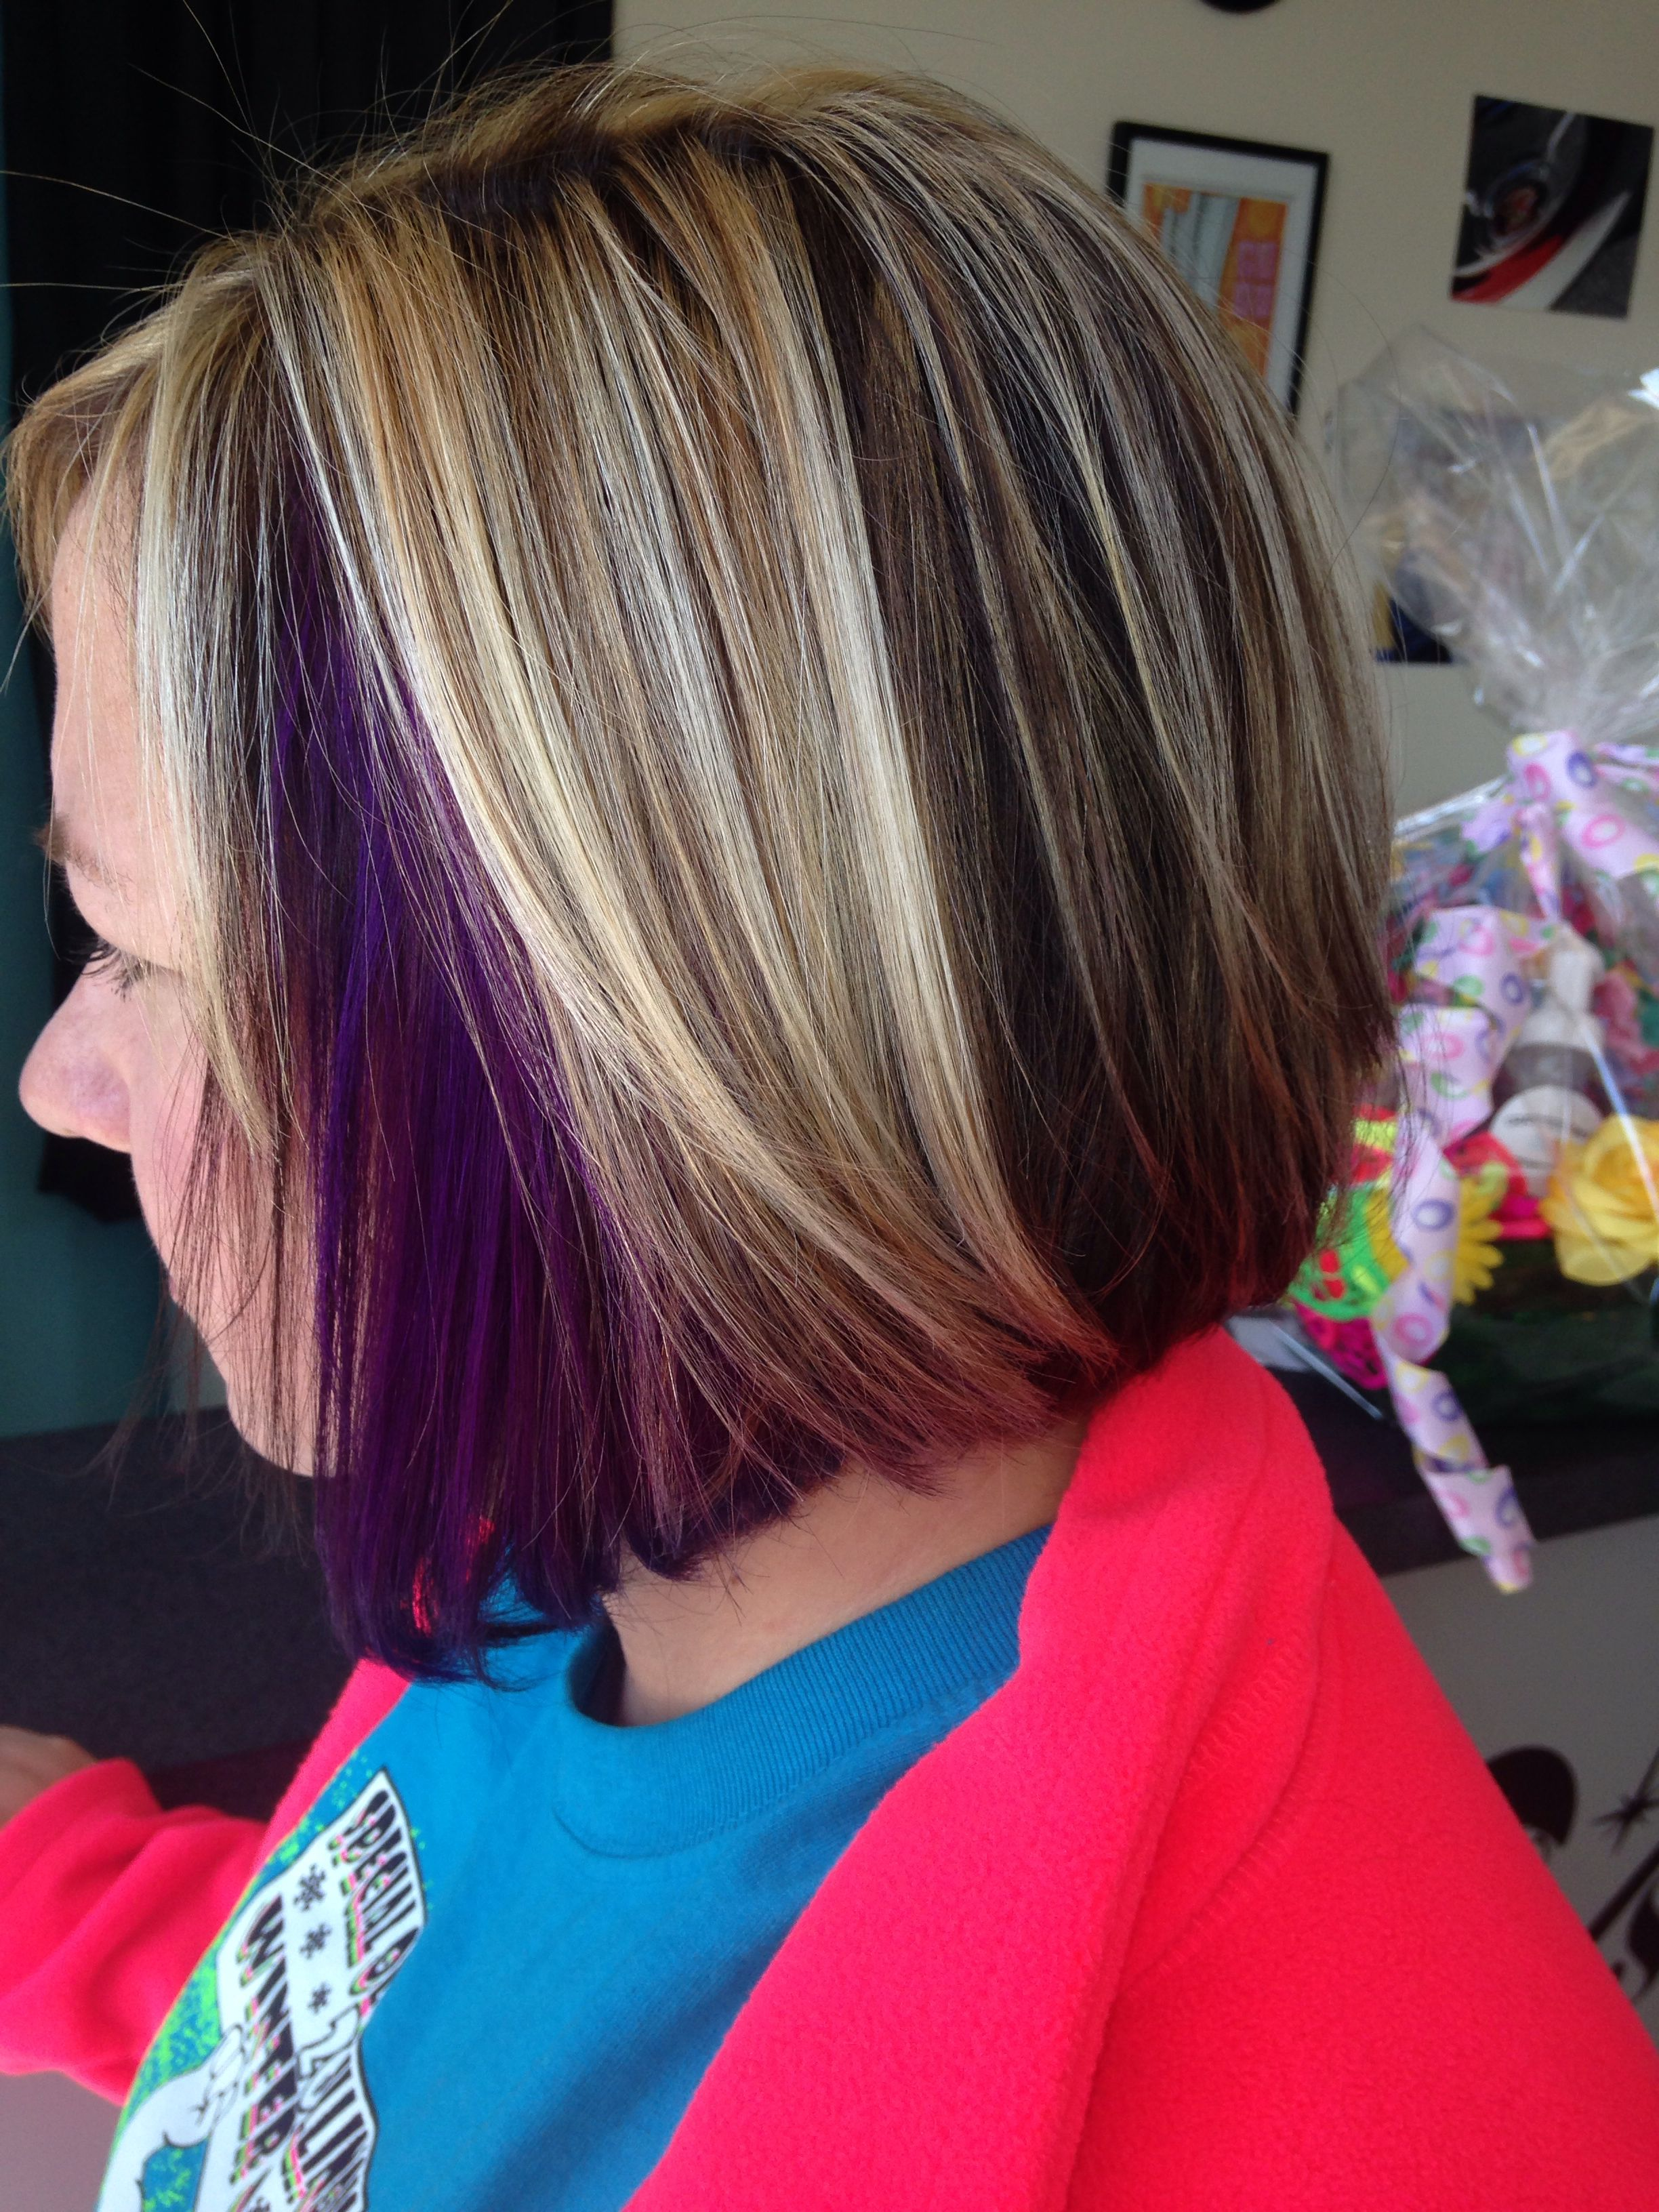 Pin By Missypuma On Salon A Go Go Hair Color Flamboyage Blonde Highlights Hair Color Purple